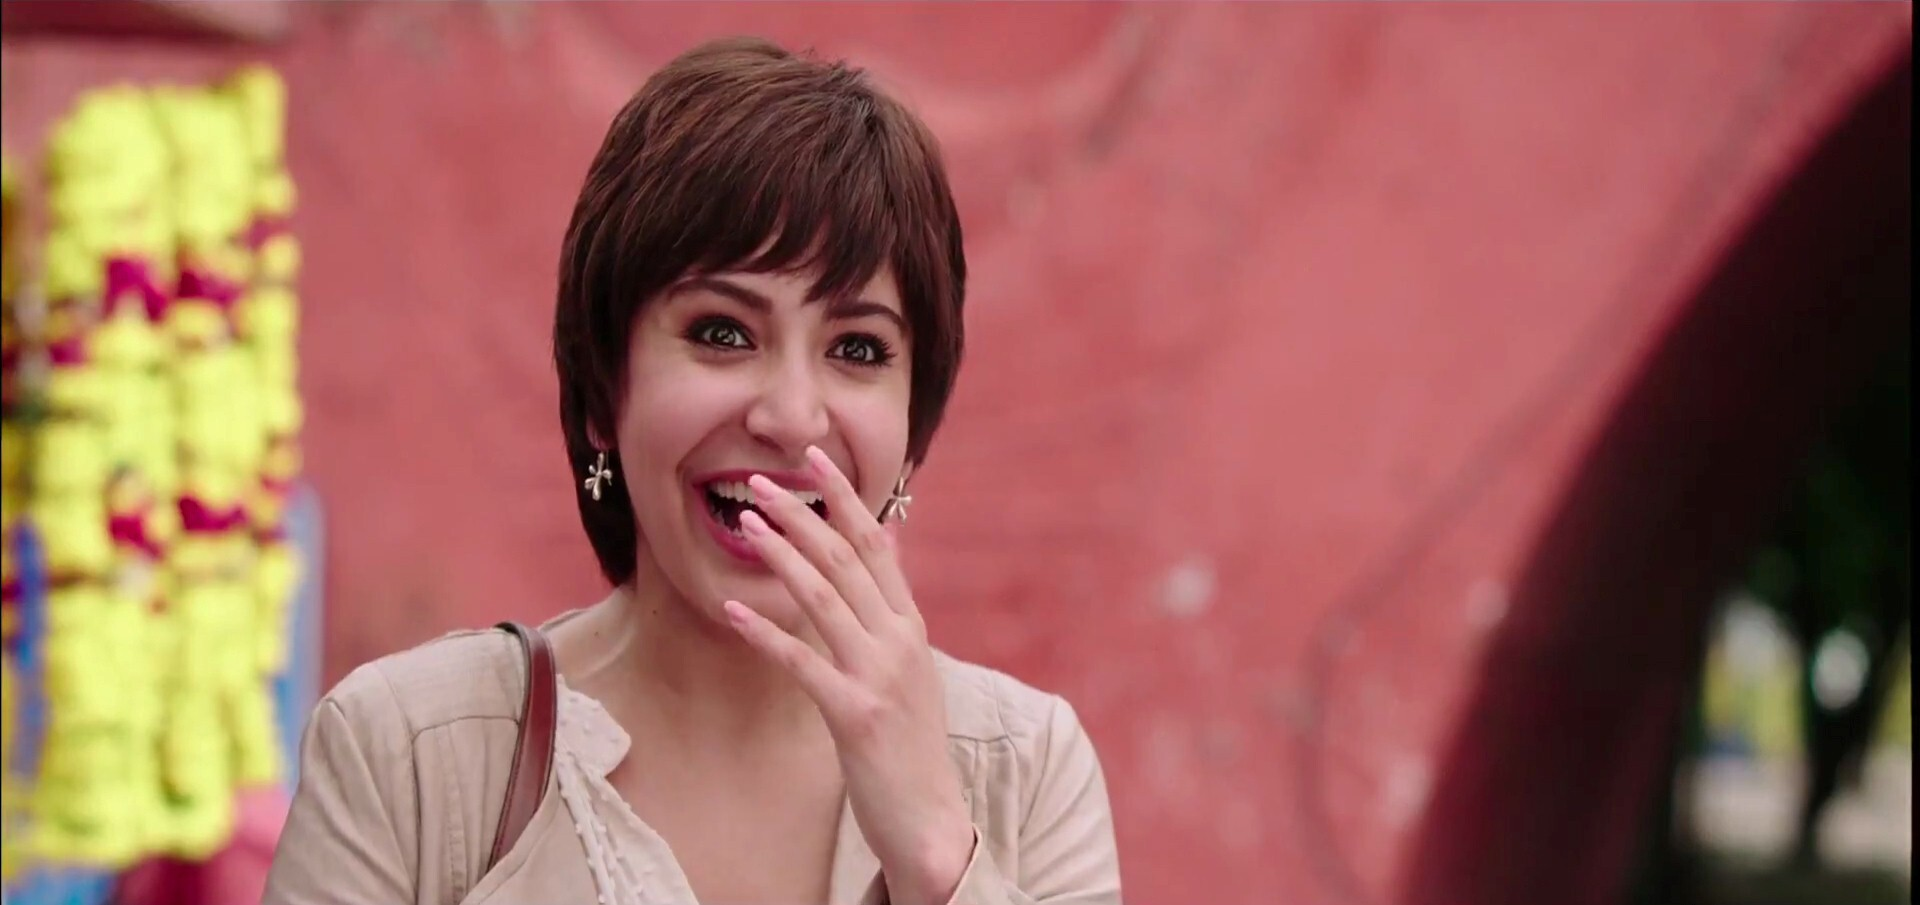 Anushka Sharma With New Hair Style In Upcoming Bollywood Movie Pk Hd